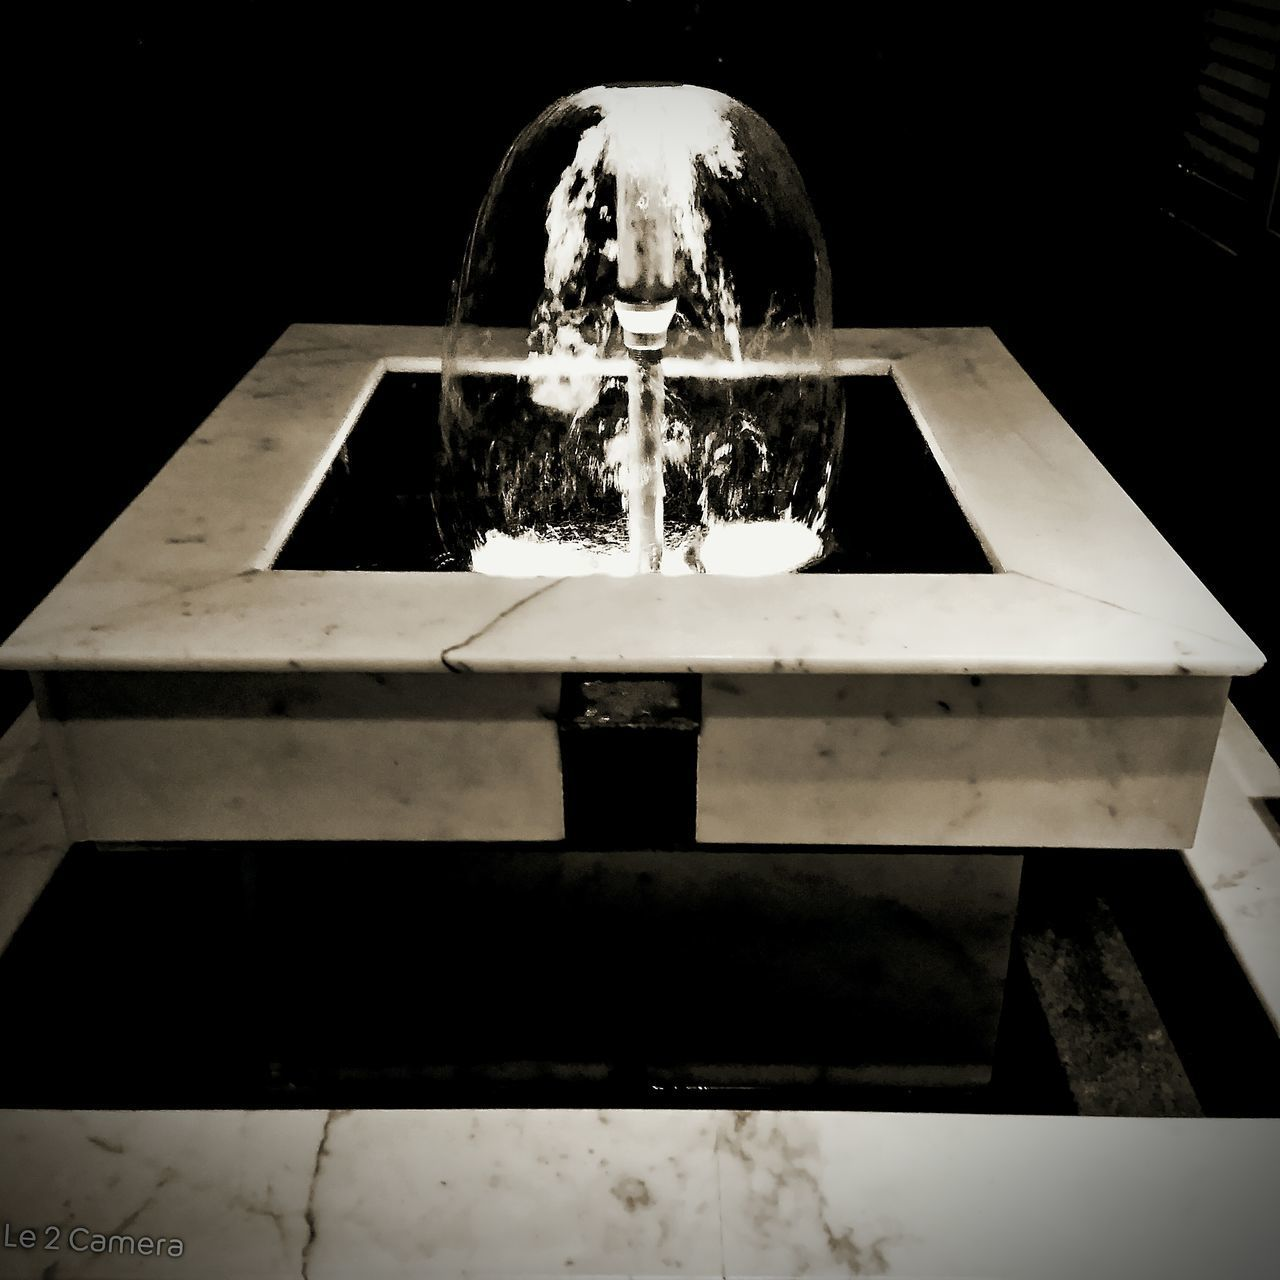 Fountain Black And White Mobile Photography Random Water Close-up No People Outdoors Night Welcome To Black India Trying Hands In Picture Black Clicked Beauty In Nature